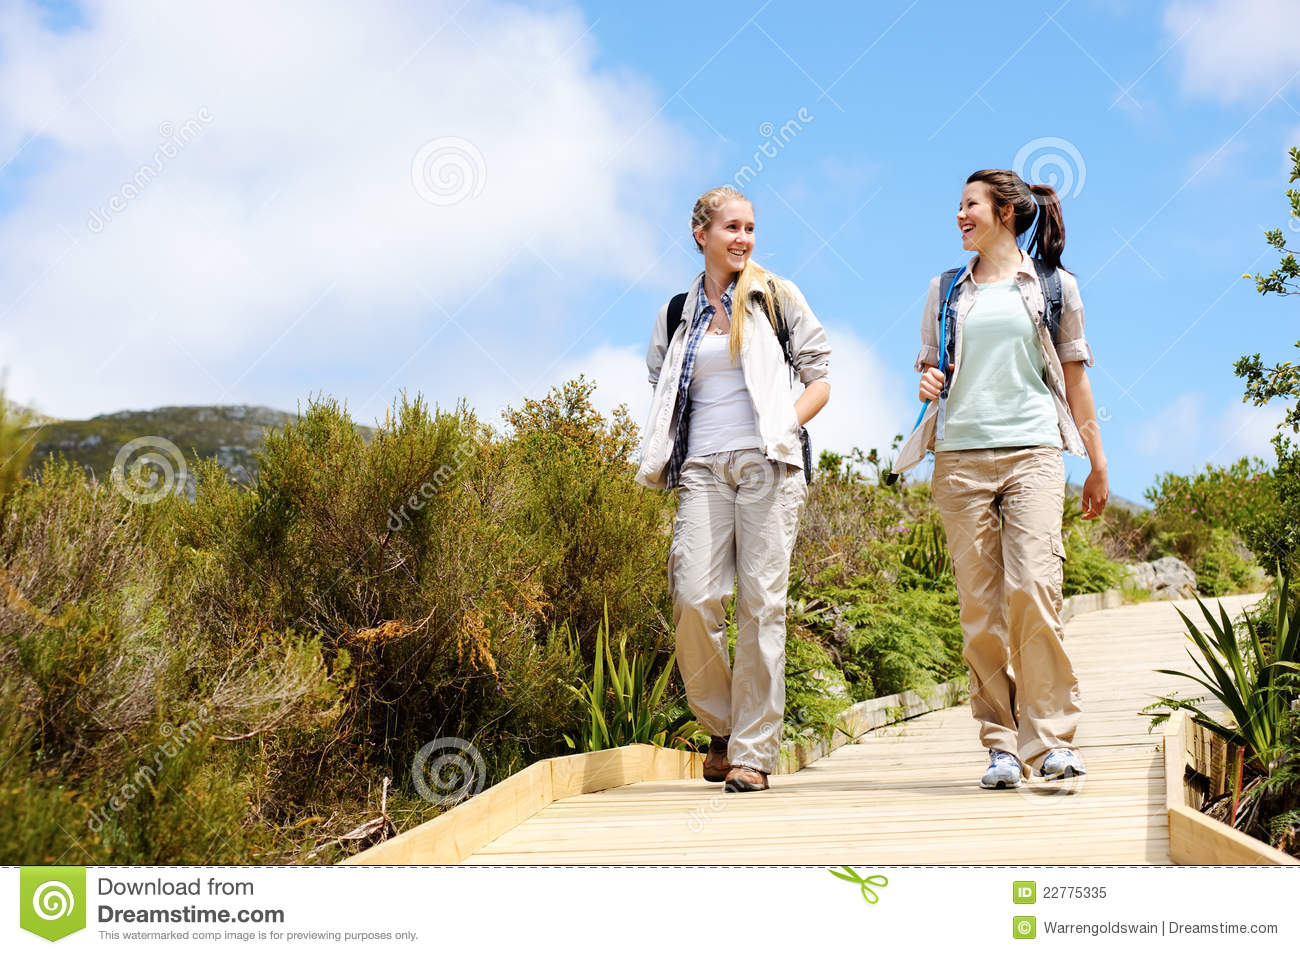 Young women starting a hike